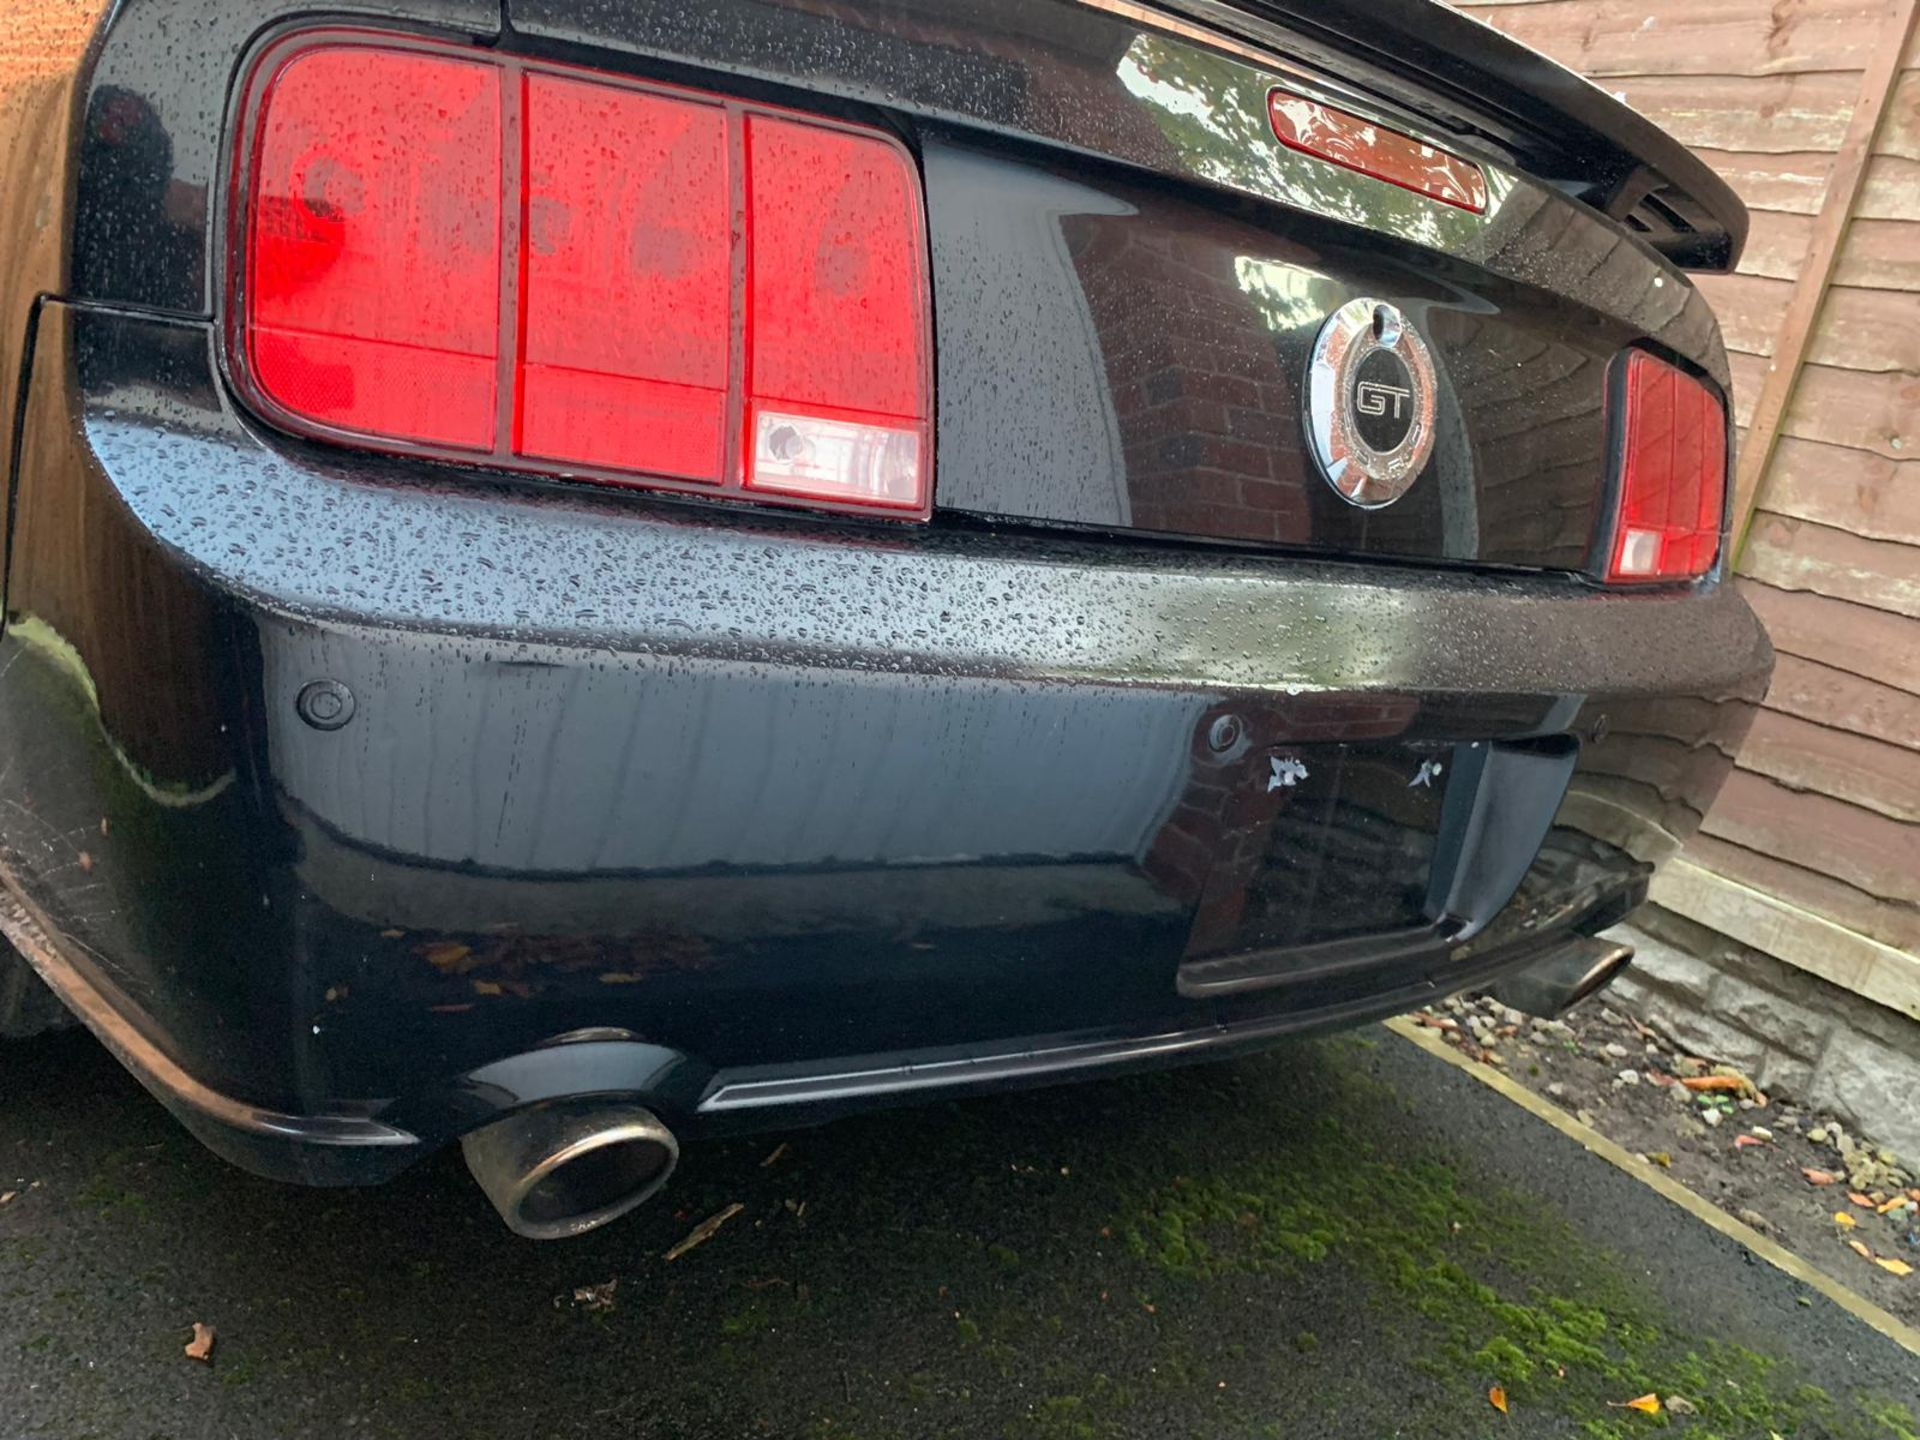 MUSTANG GT 4.6CC V8 2007, 48K MILES - NOT YET UK REG BUT WILL COME WITH NOVA CERTIFICATE *NO VAT* - Image 6 of 10